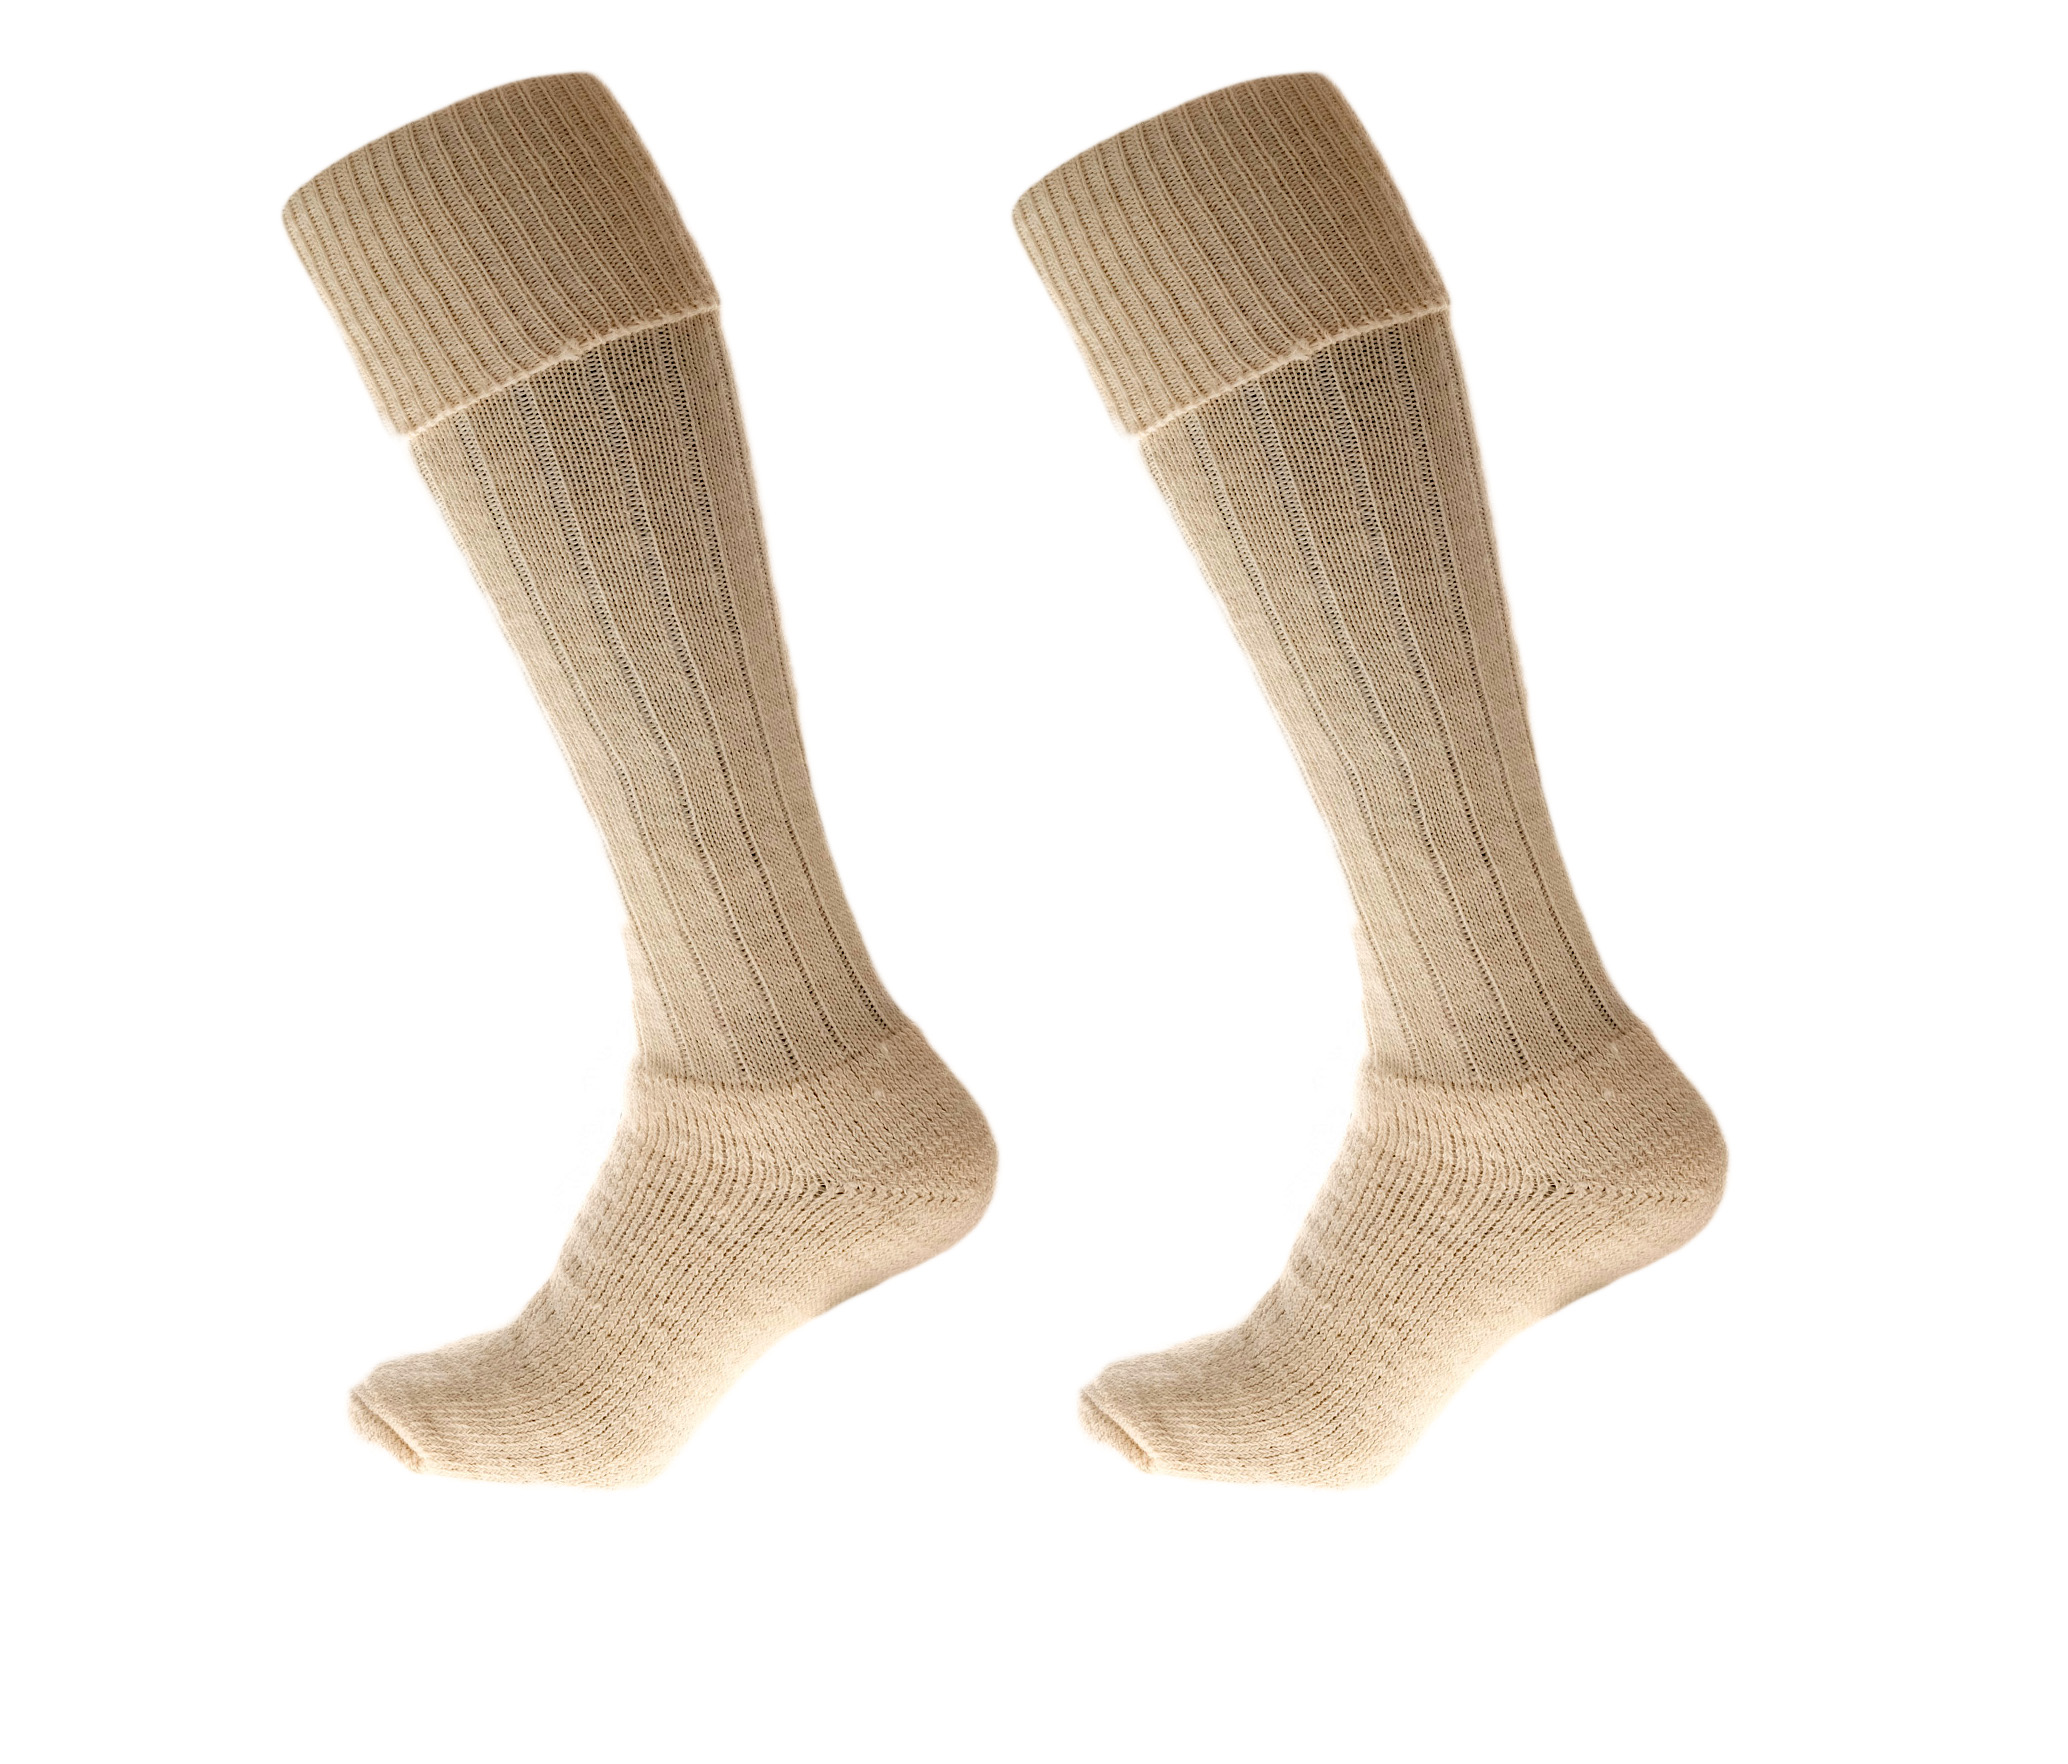 Alpaca Wool Long Country Socks Cream 75% Alpaca Wool cushioned sole and heel